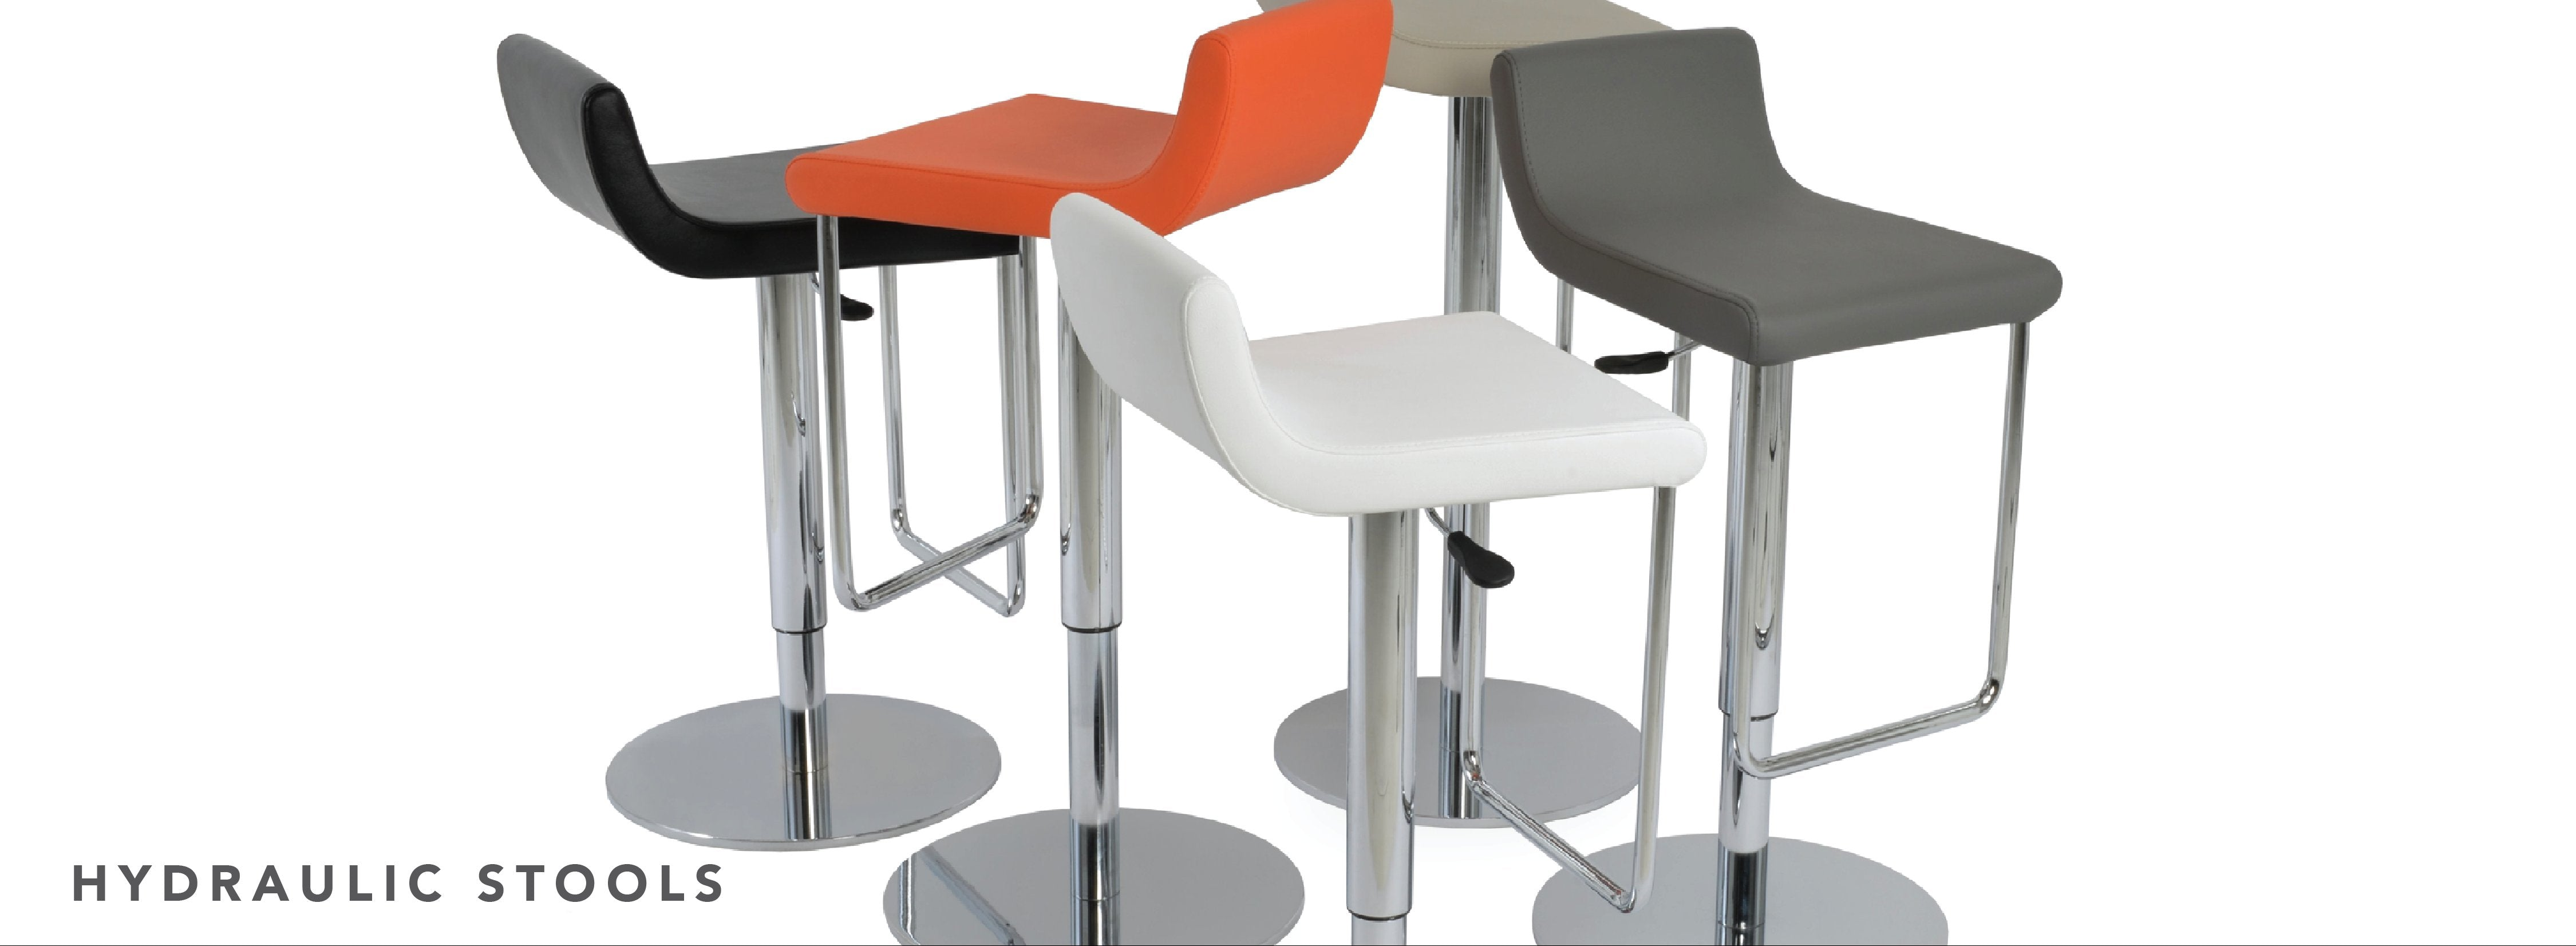 Enjoyable Hydraulic Stools Selection Of Stationary Hydraulic Swivel Pabps2019 Chair Design Images Pabps2019Com